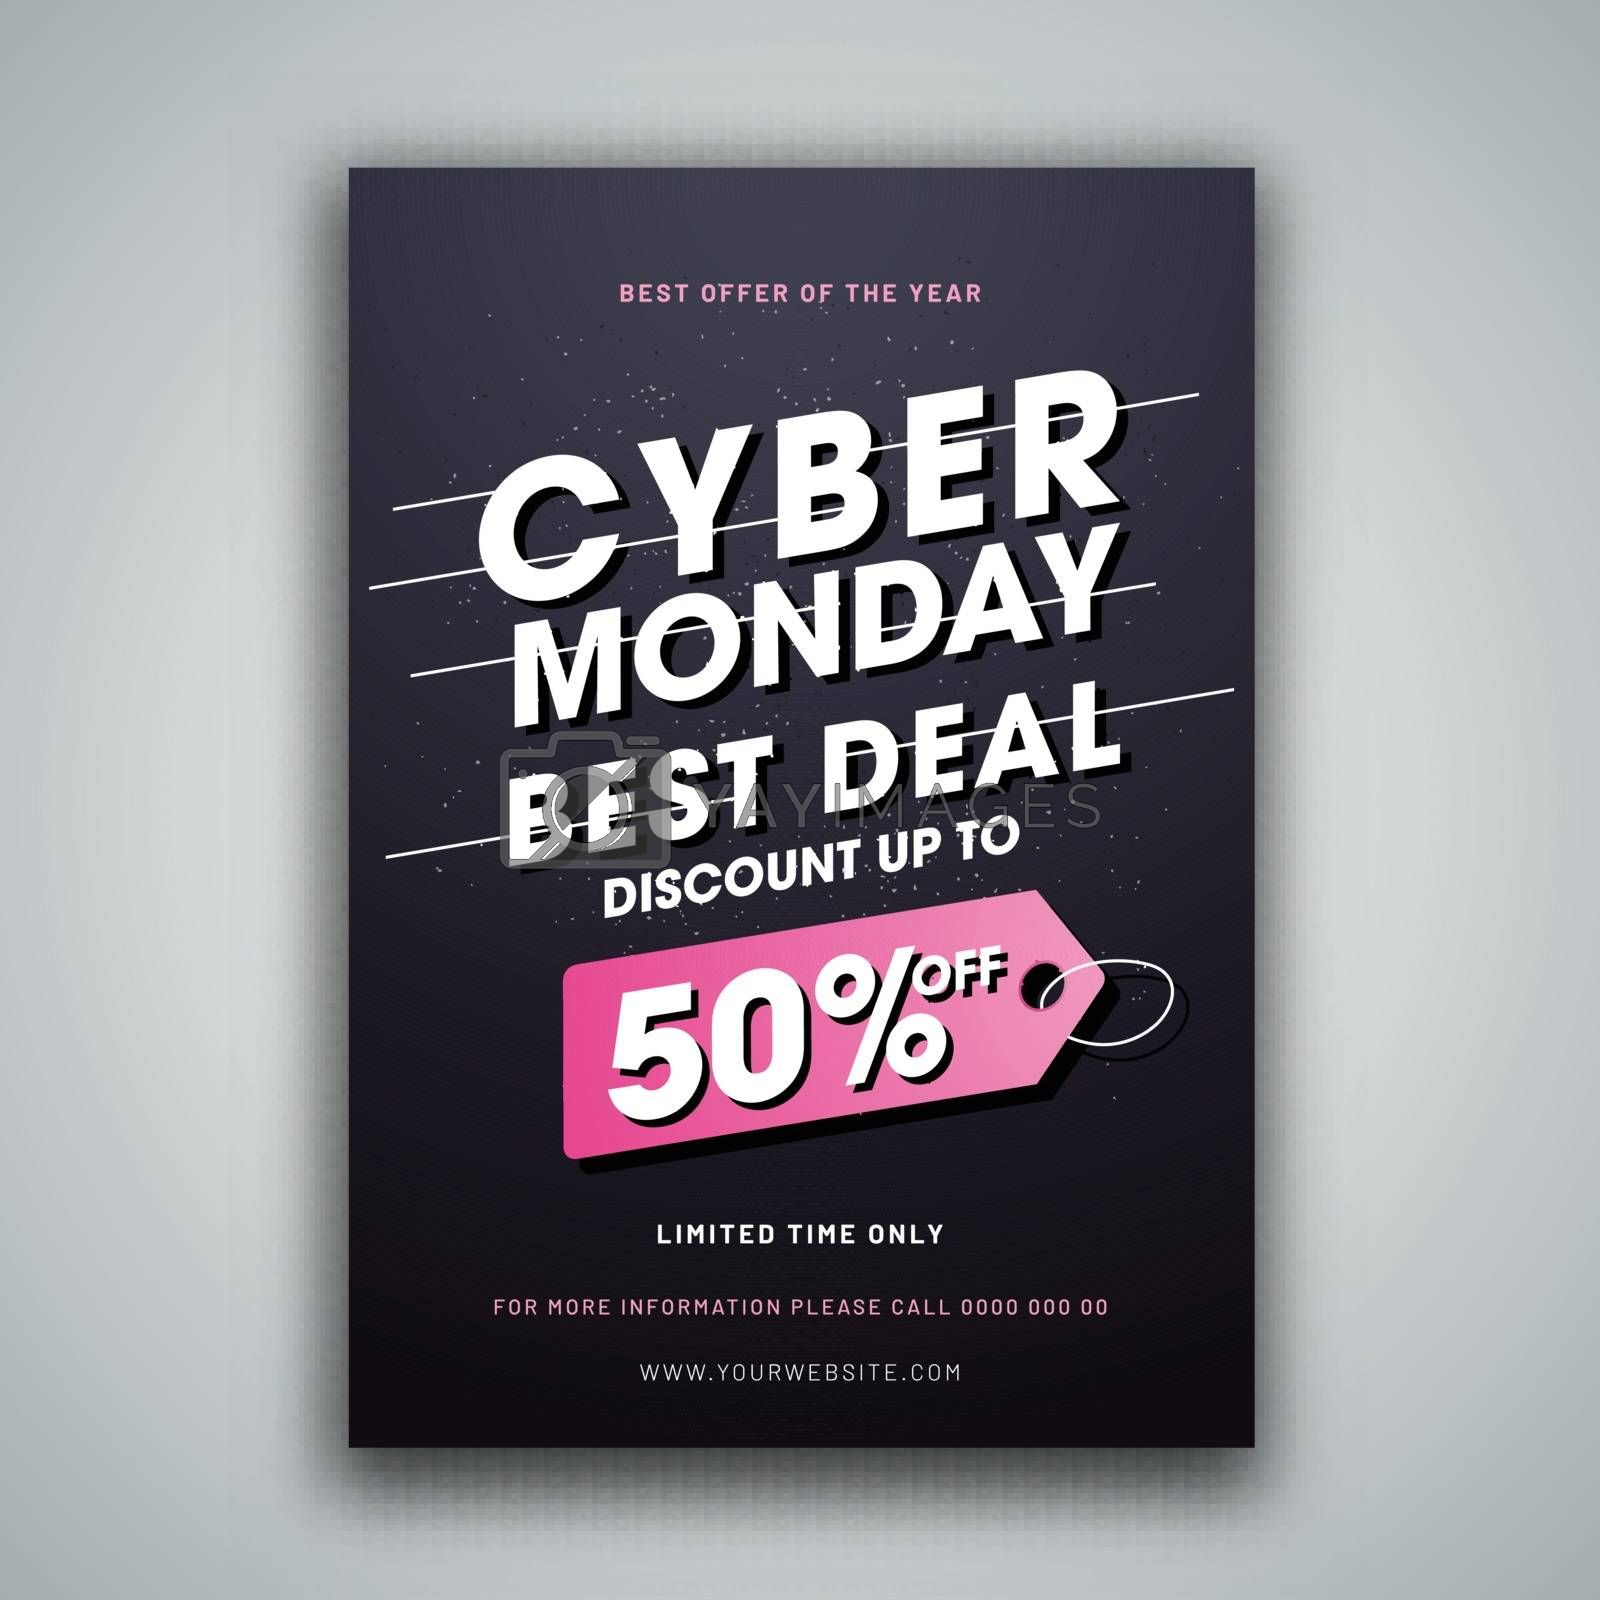 Advertising template or flyer design with 50% discount offer for Cyber Monday Sale.